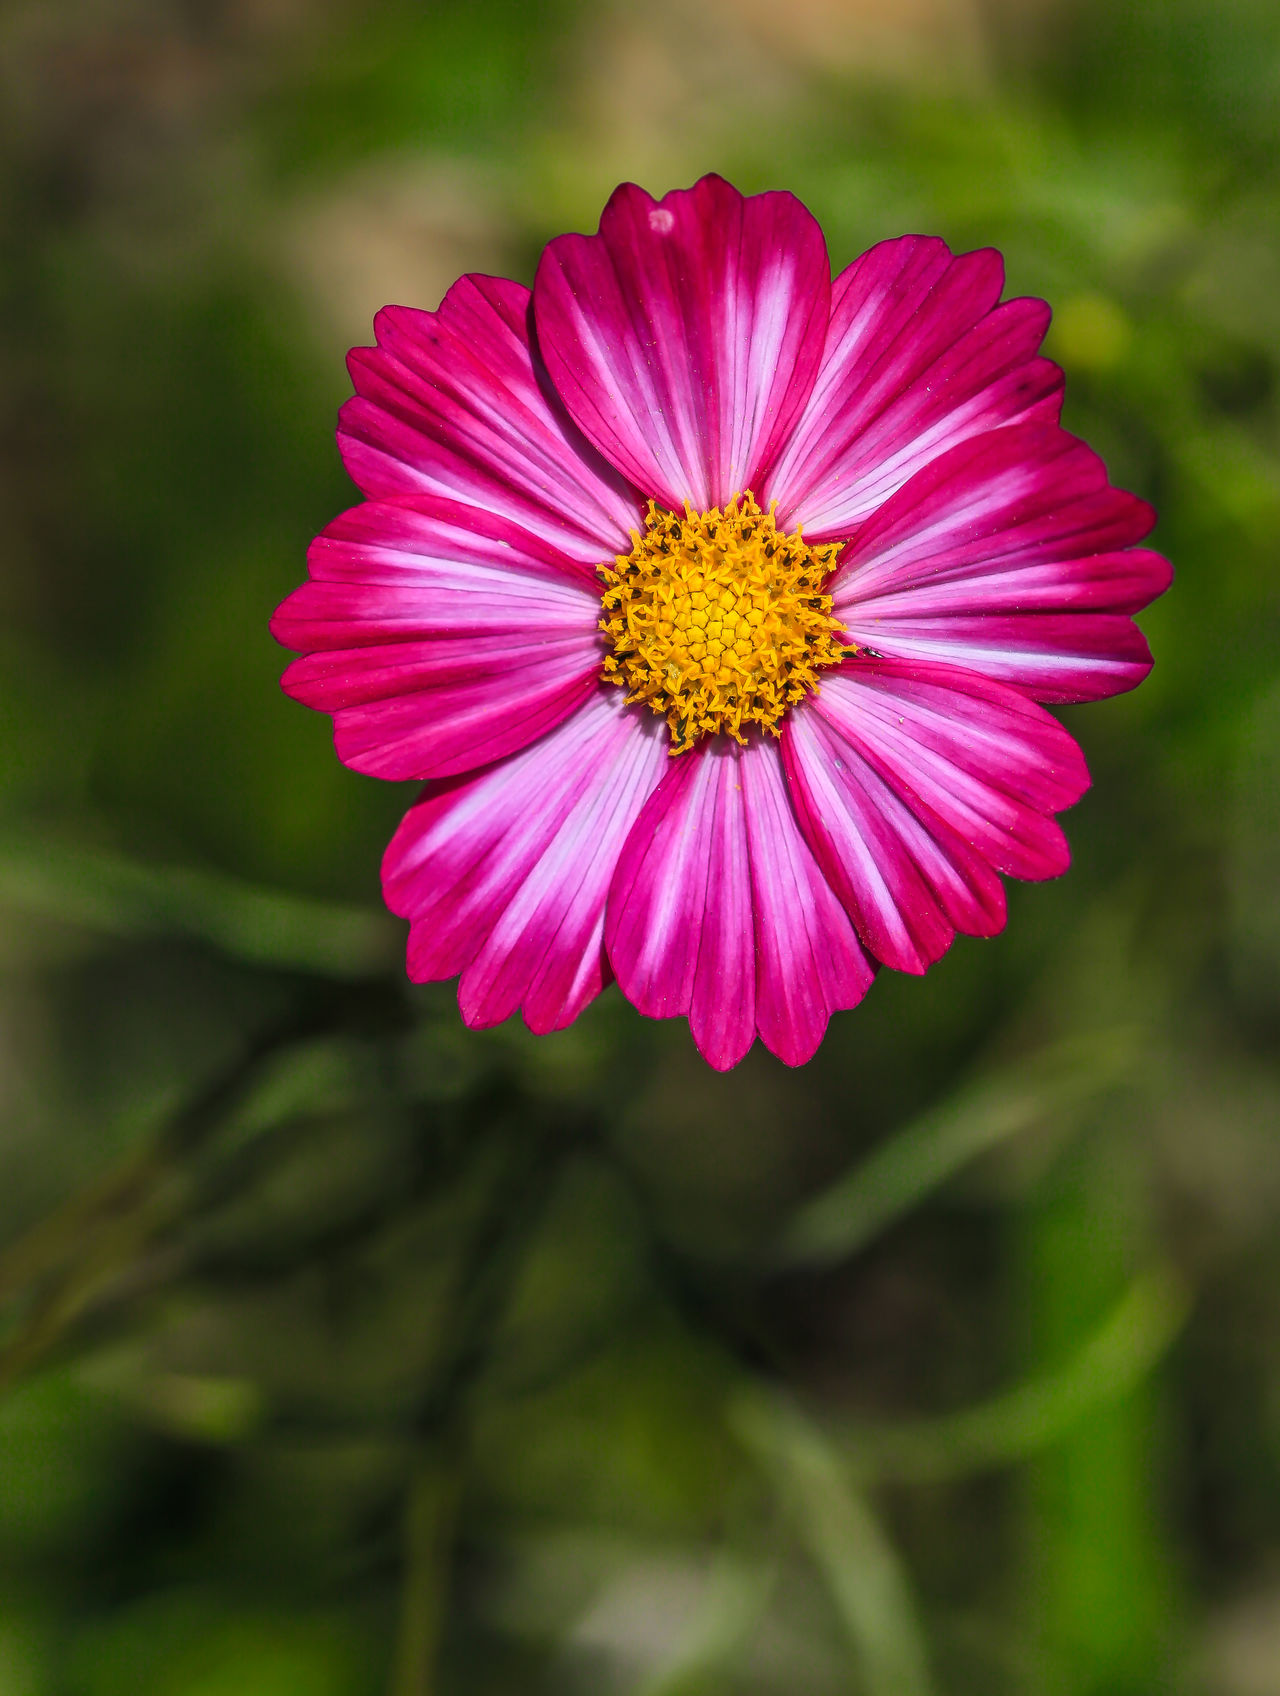 Off season, farmer feed the field by plant wildflowers Beauty In Nature Blooming Butterfly Flower Close-up Day Flower Flower Head Flowers Field Focus On Foreground Fragility Freshness Growth Nature No People Off Season Outdoors Petal Pink Color Pollen Taiwan Wildflowers Winter Zinnia